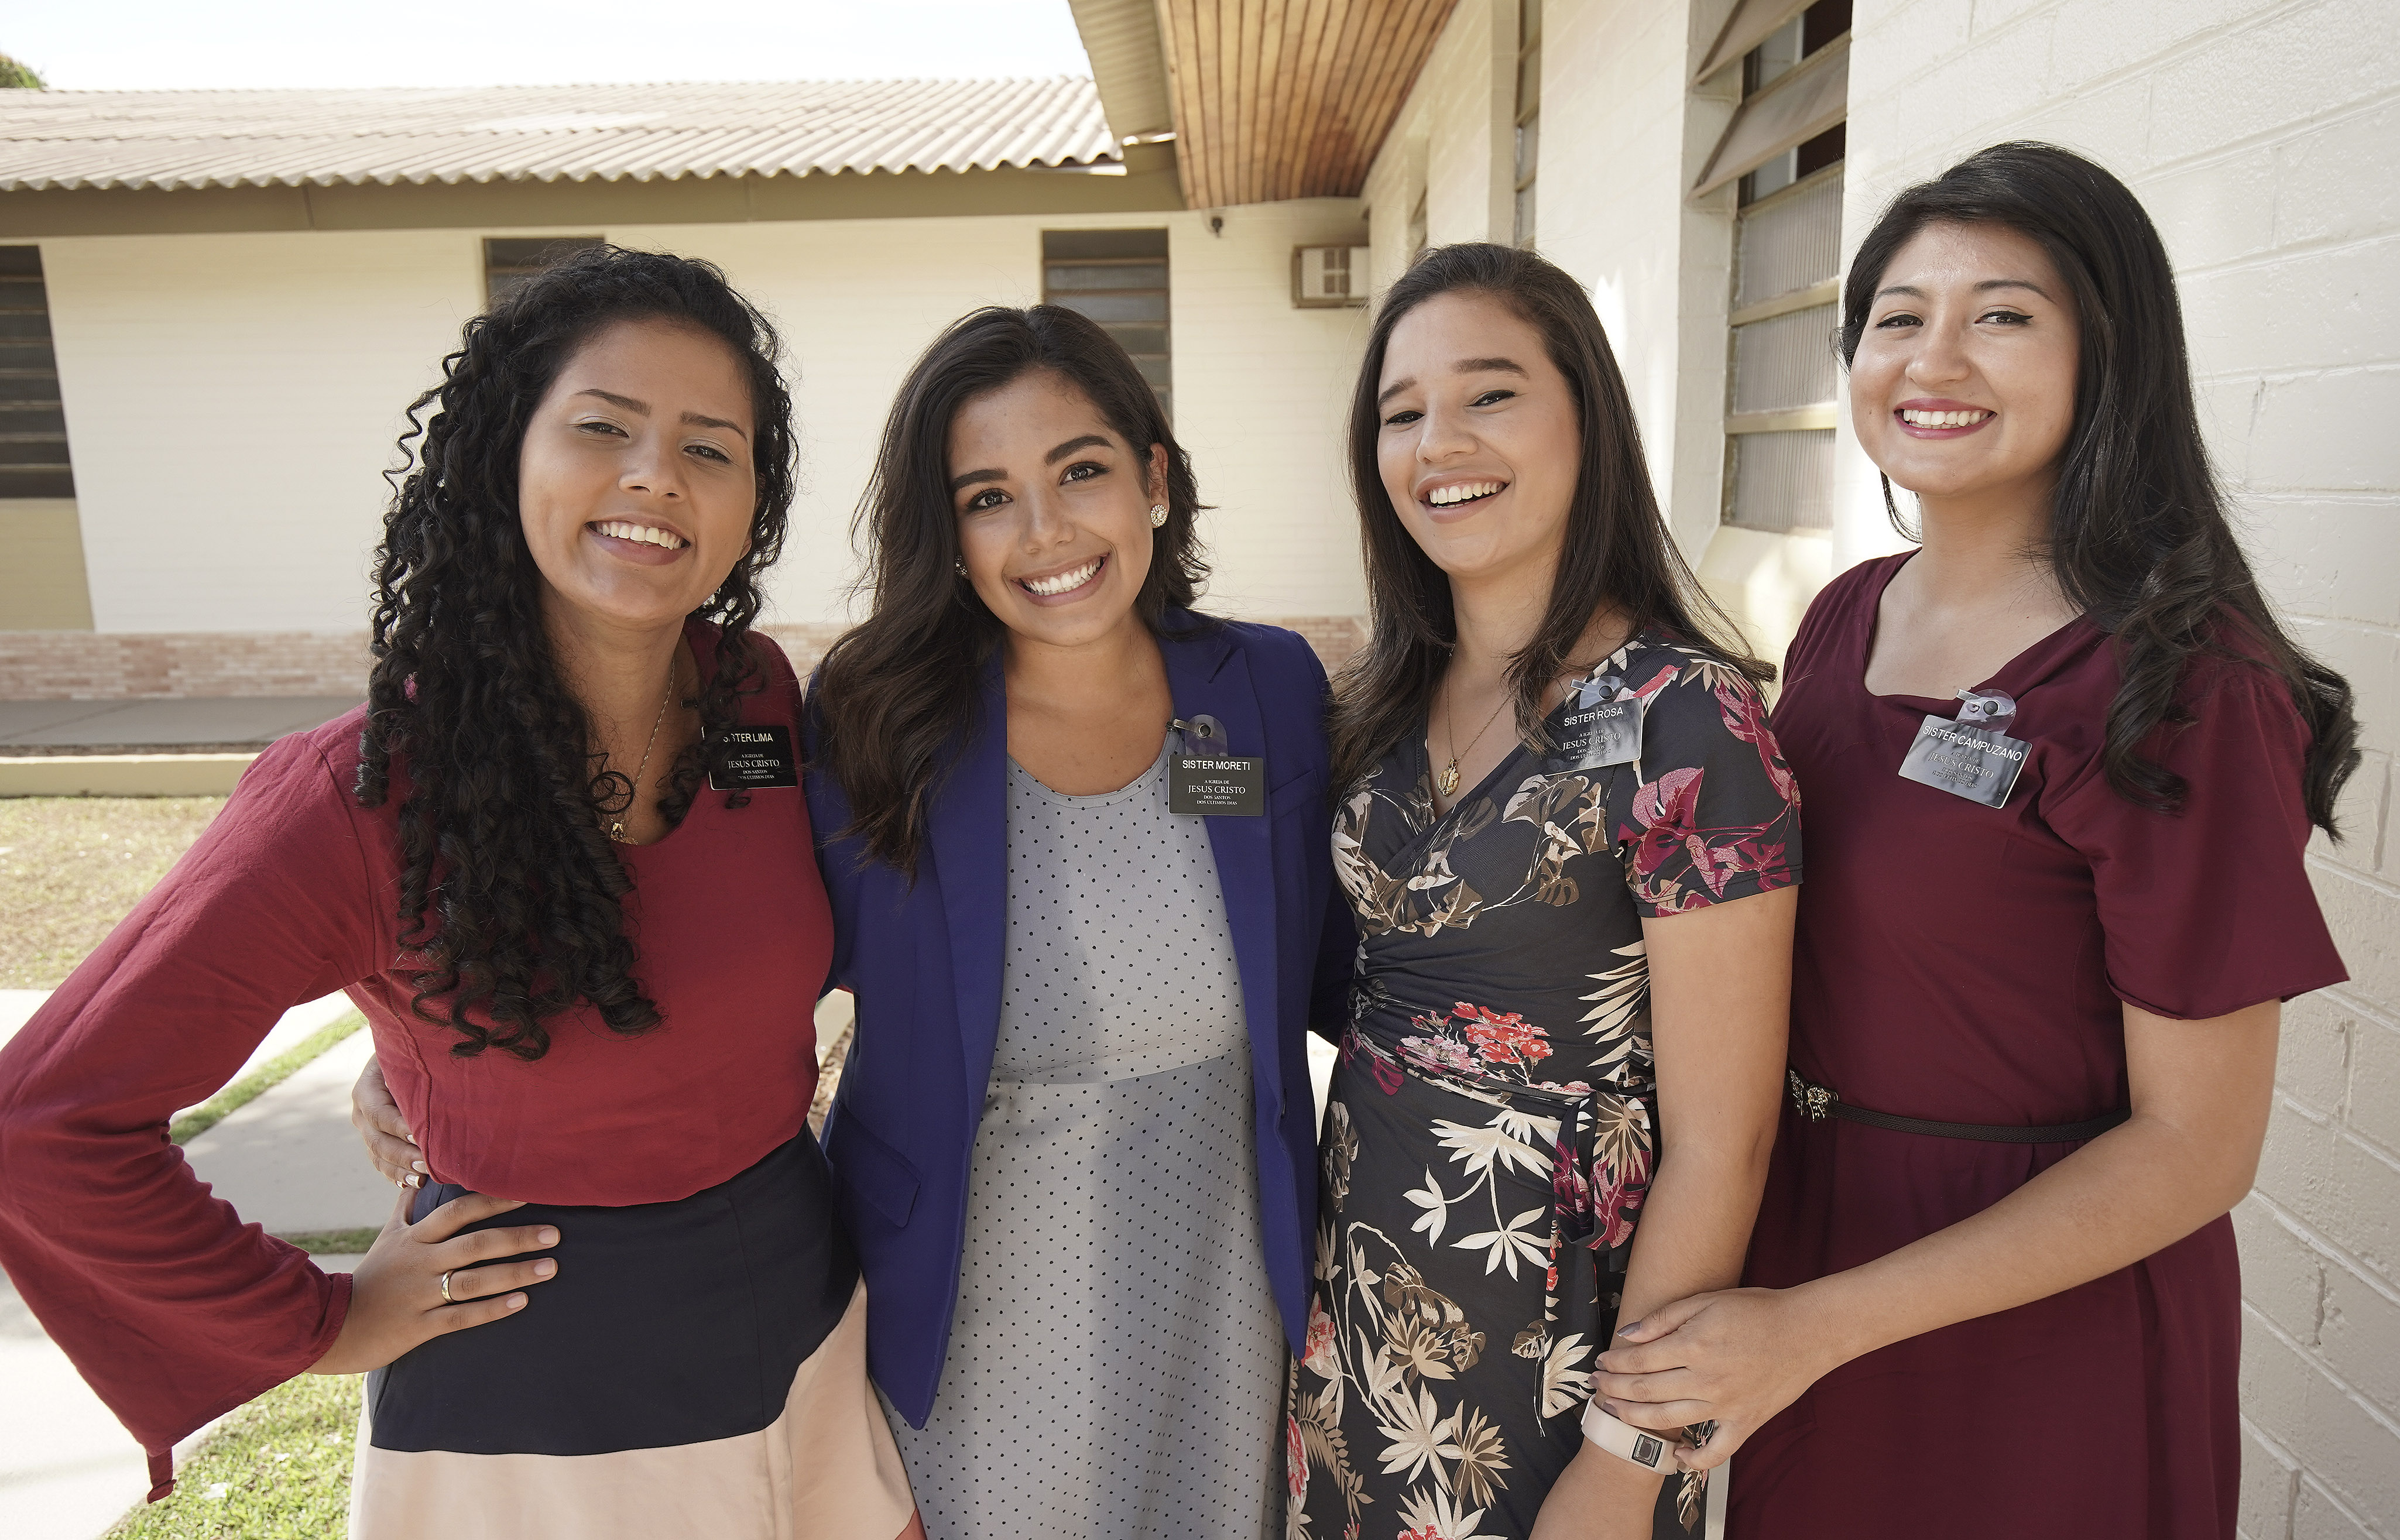 Sisters Gabriela Lima, Isabella Moreti, Marina Rosa and Melissa Campuzano gather before a meeting with President Russell M. Nelson of The Church of Jesus Christ of Latter-day Saints in Brasilia, Brazil, on Friday, Aug. 30, 2019.